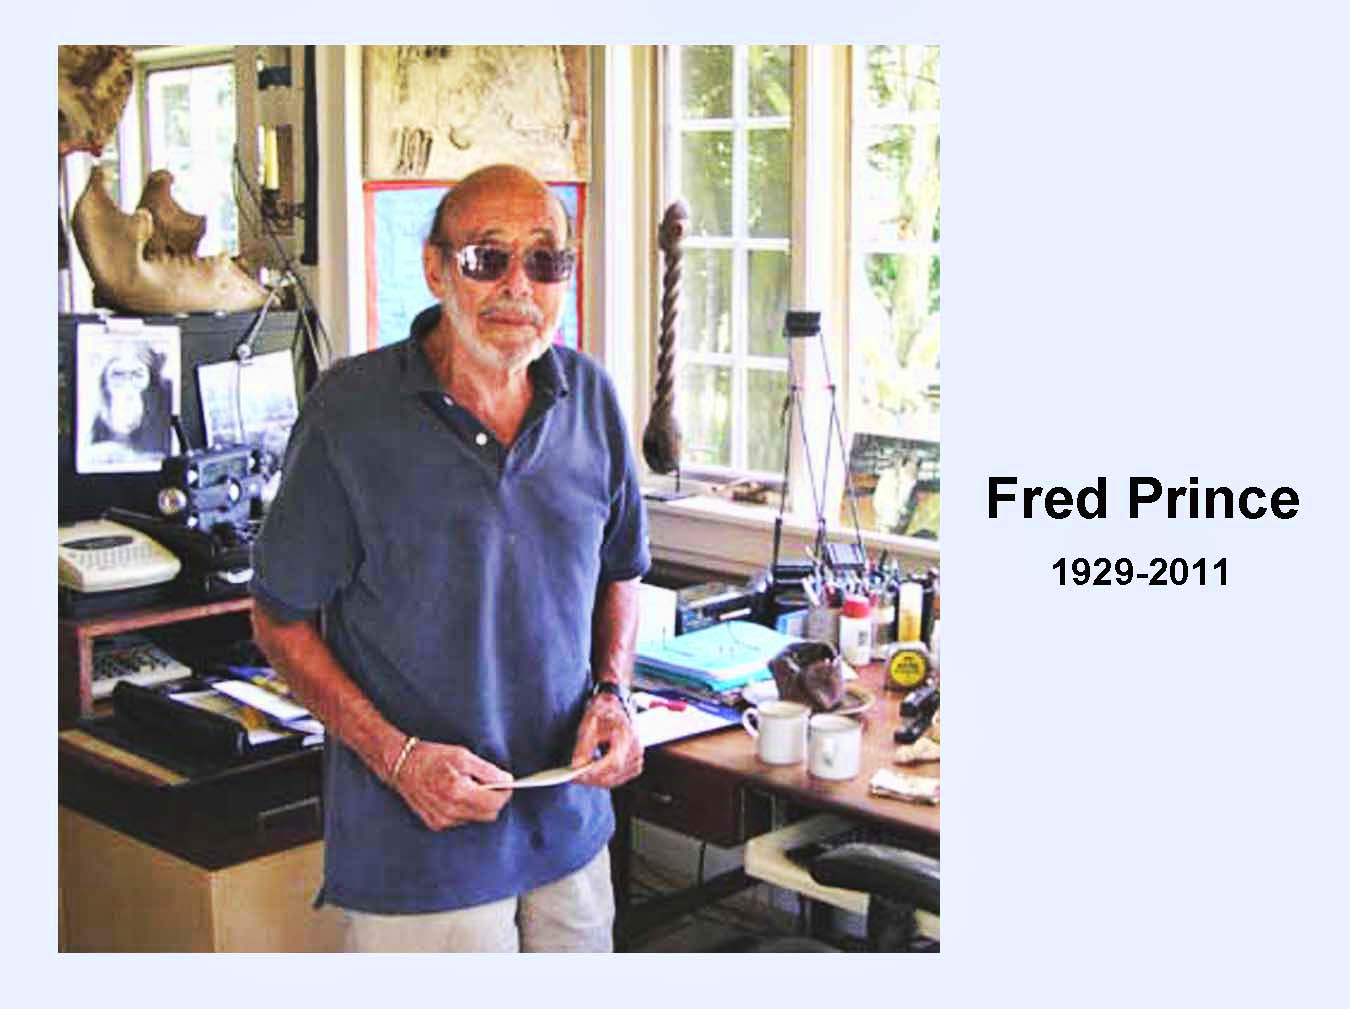 Fred Prince 1929-2011